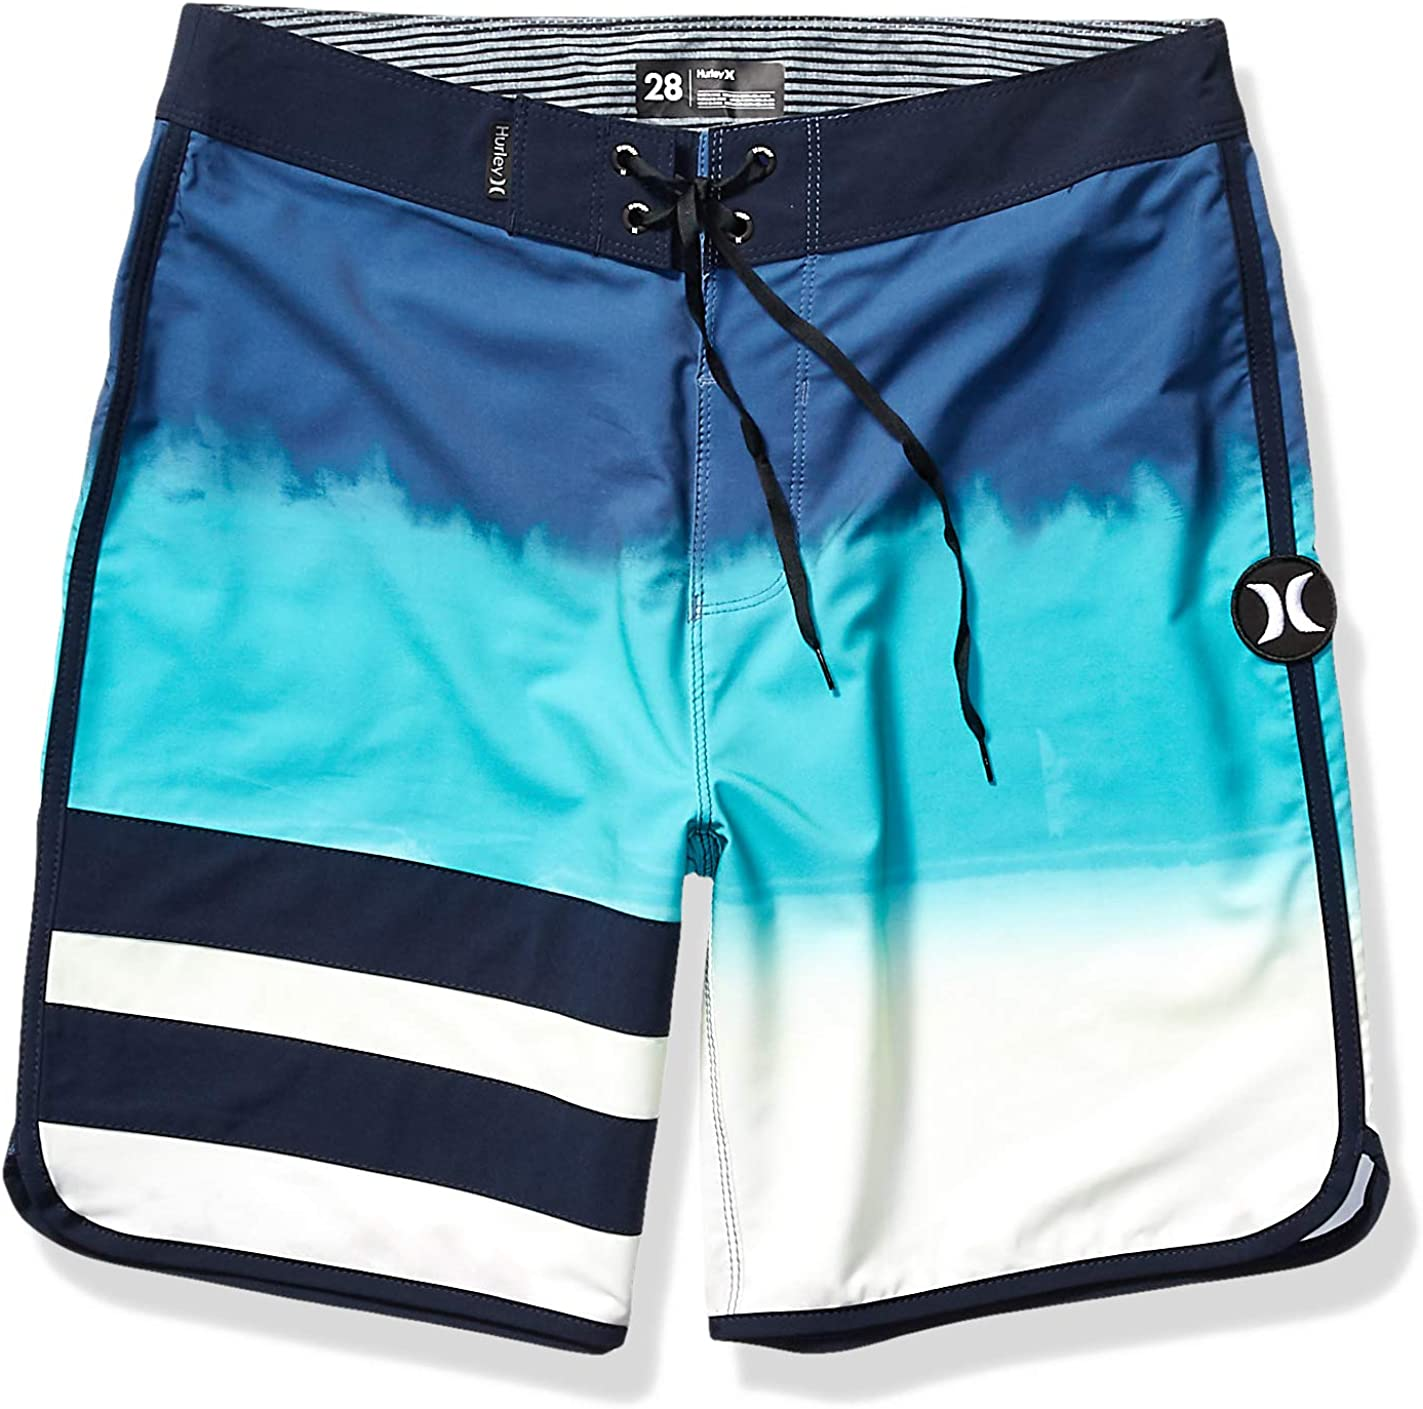 Hurley Men's Phantom Block Party Fever Board Shorts